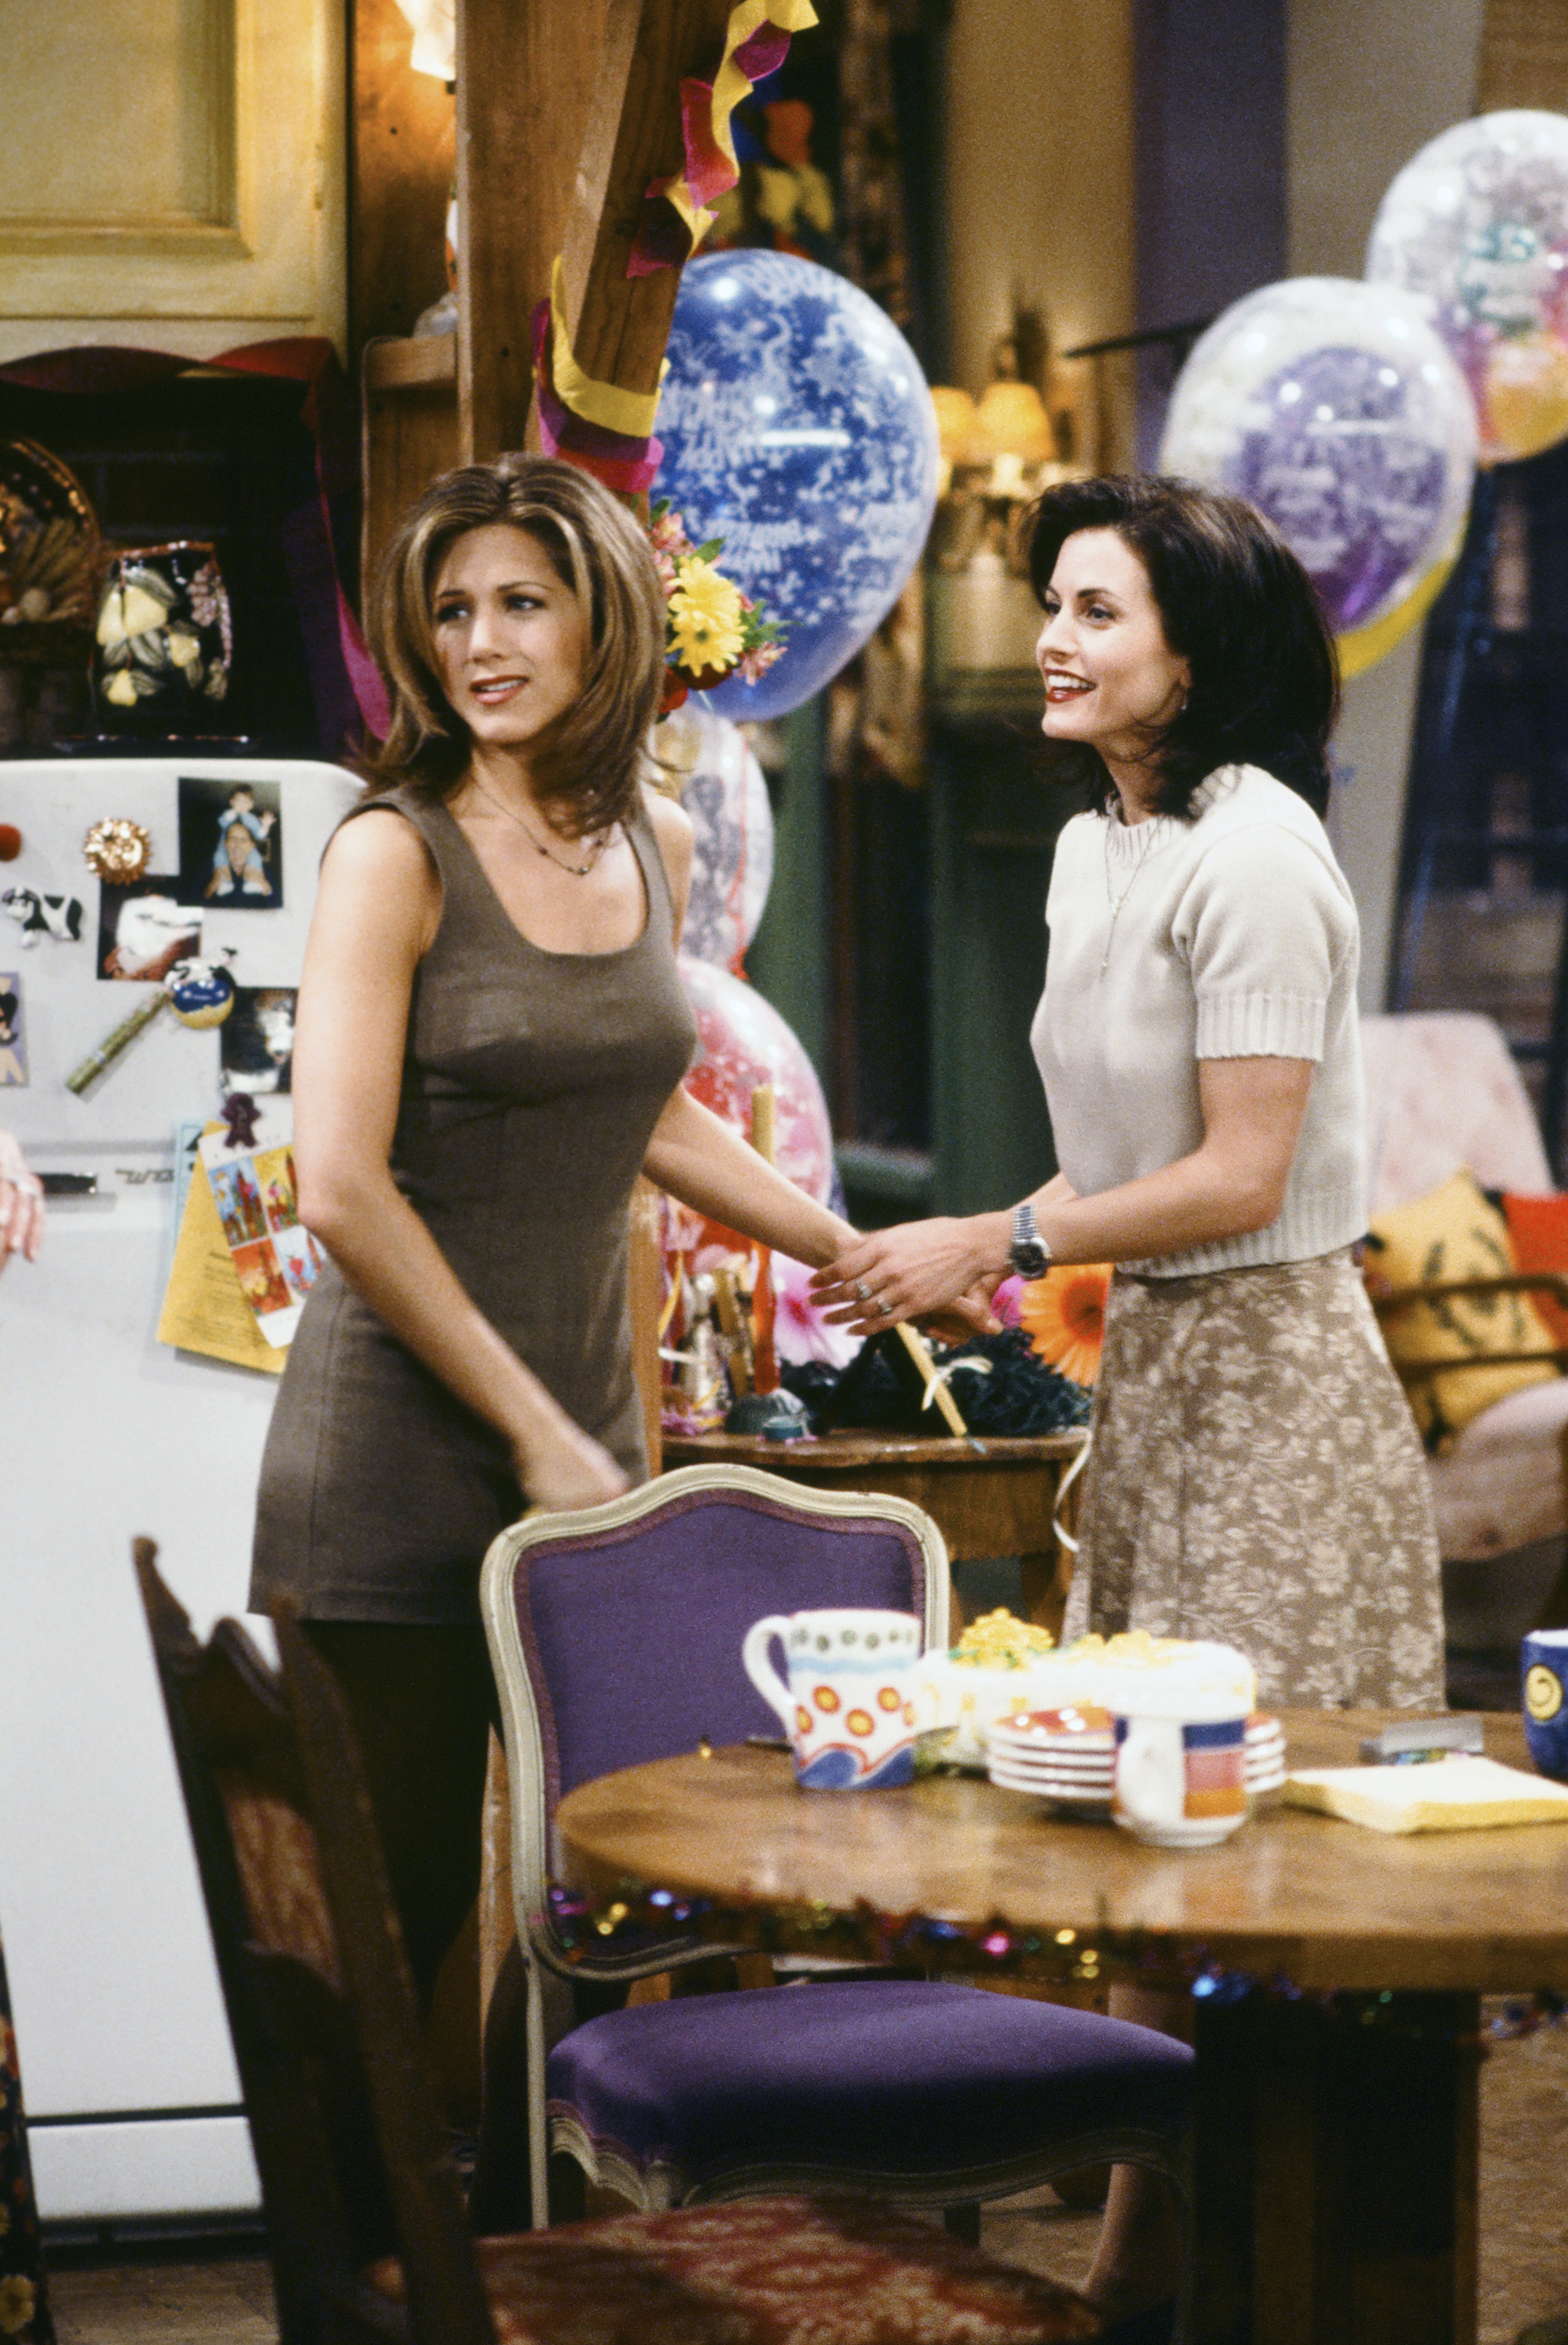 jennifer aniston wedding details monica geller played a